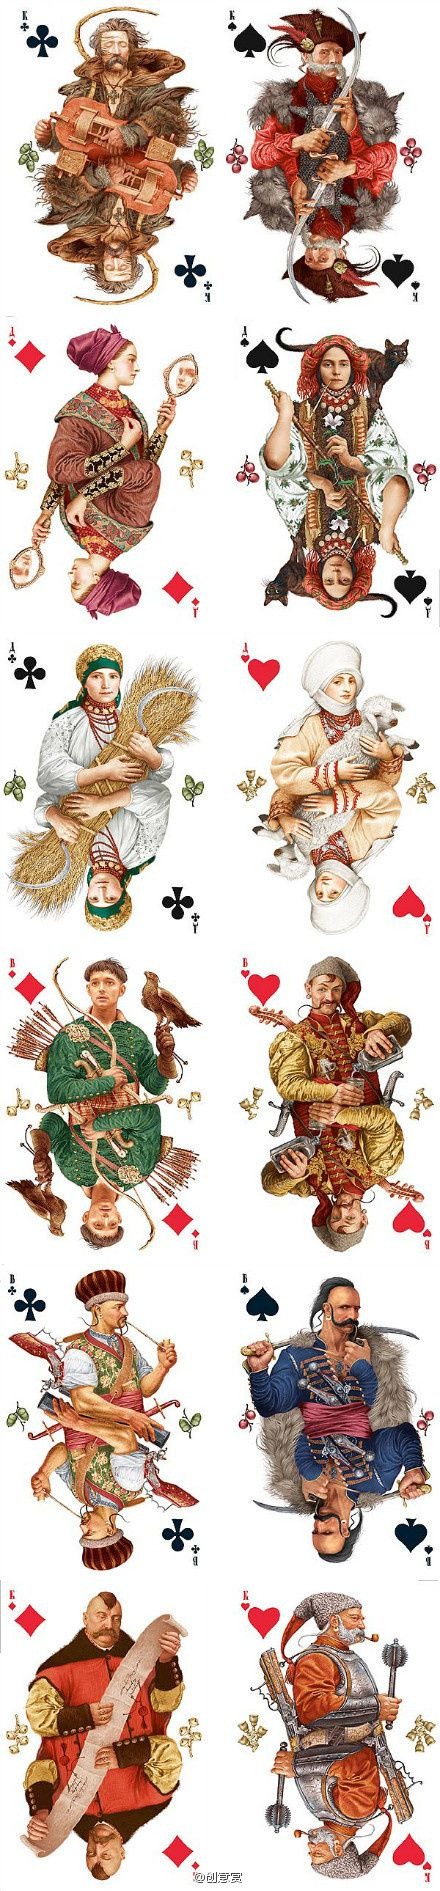 Playing Cards - Ukrainian Playing Cards - playingcards, playingcardsart, playingcardsforsale, playingcardswithfriends, playingcardswiththefamily, playingcardswithfamily, playingcardsgame, playingcardscollection, playingcardstorage, playingcardset, playingcardsfreak, playingcardsproject, cardscollectors, cardscollector, playing_cards, playingcard, design, illustration, cardgame, game, cards, cardist